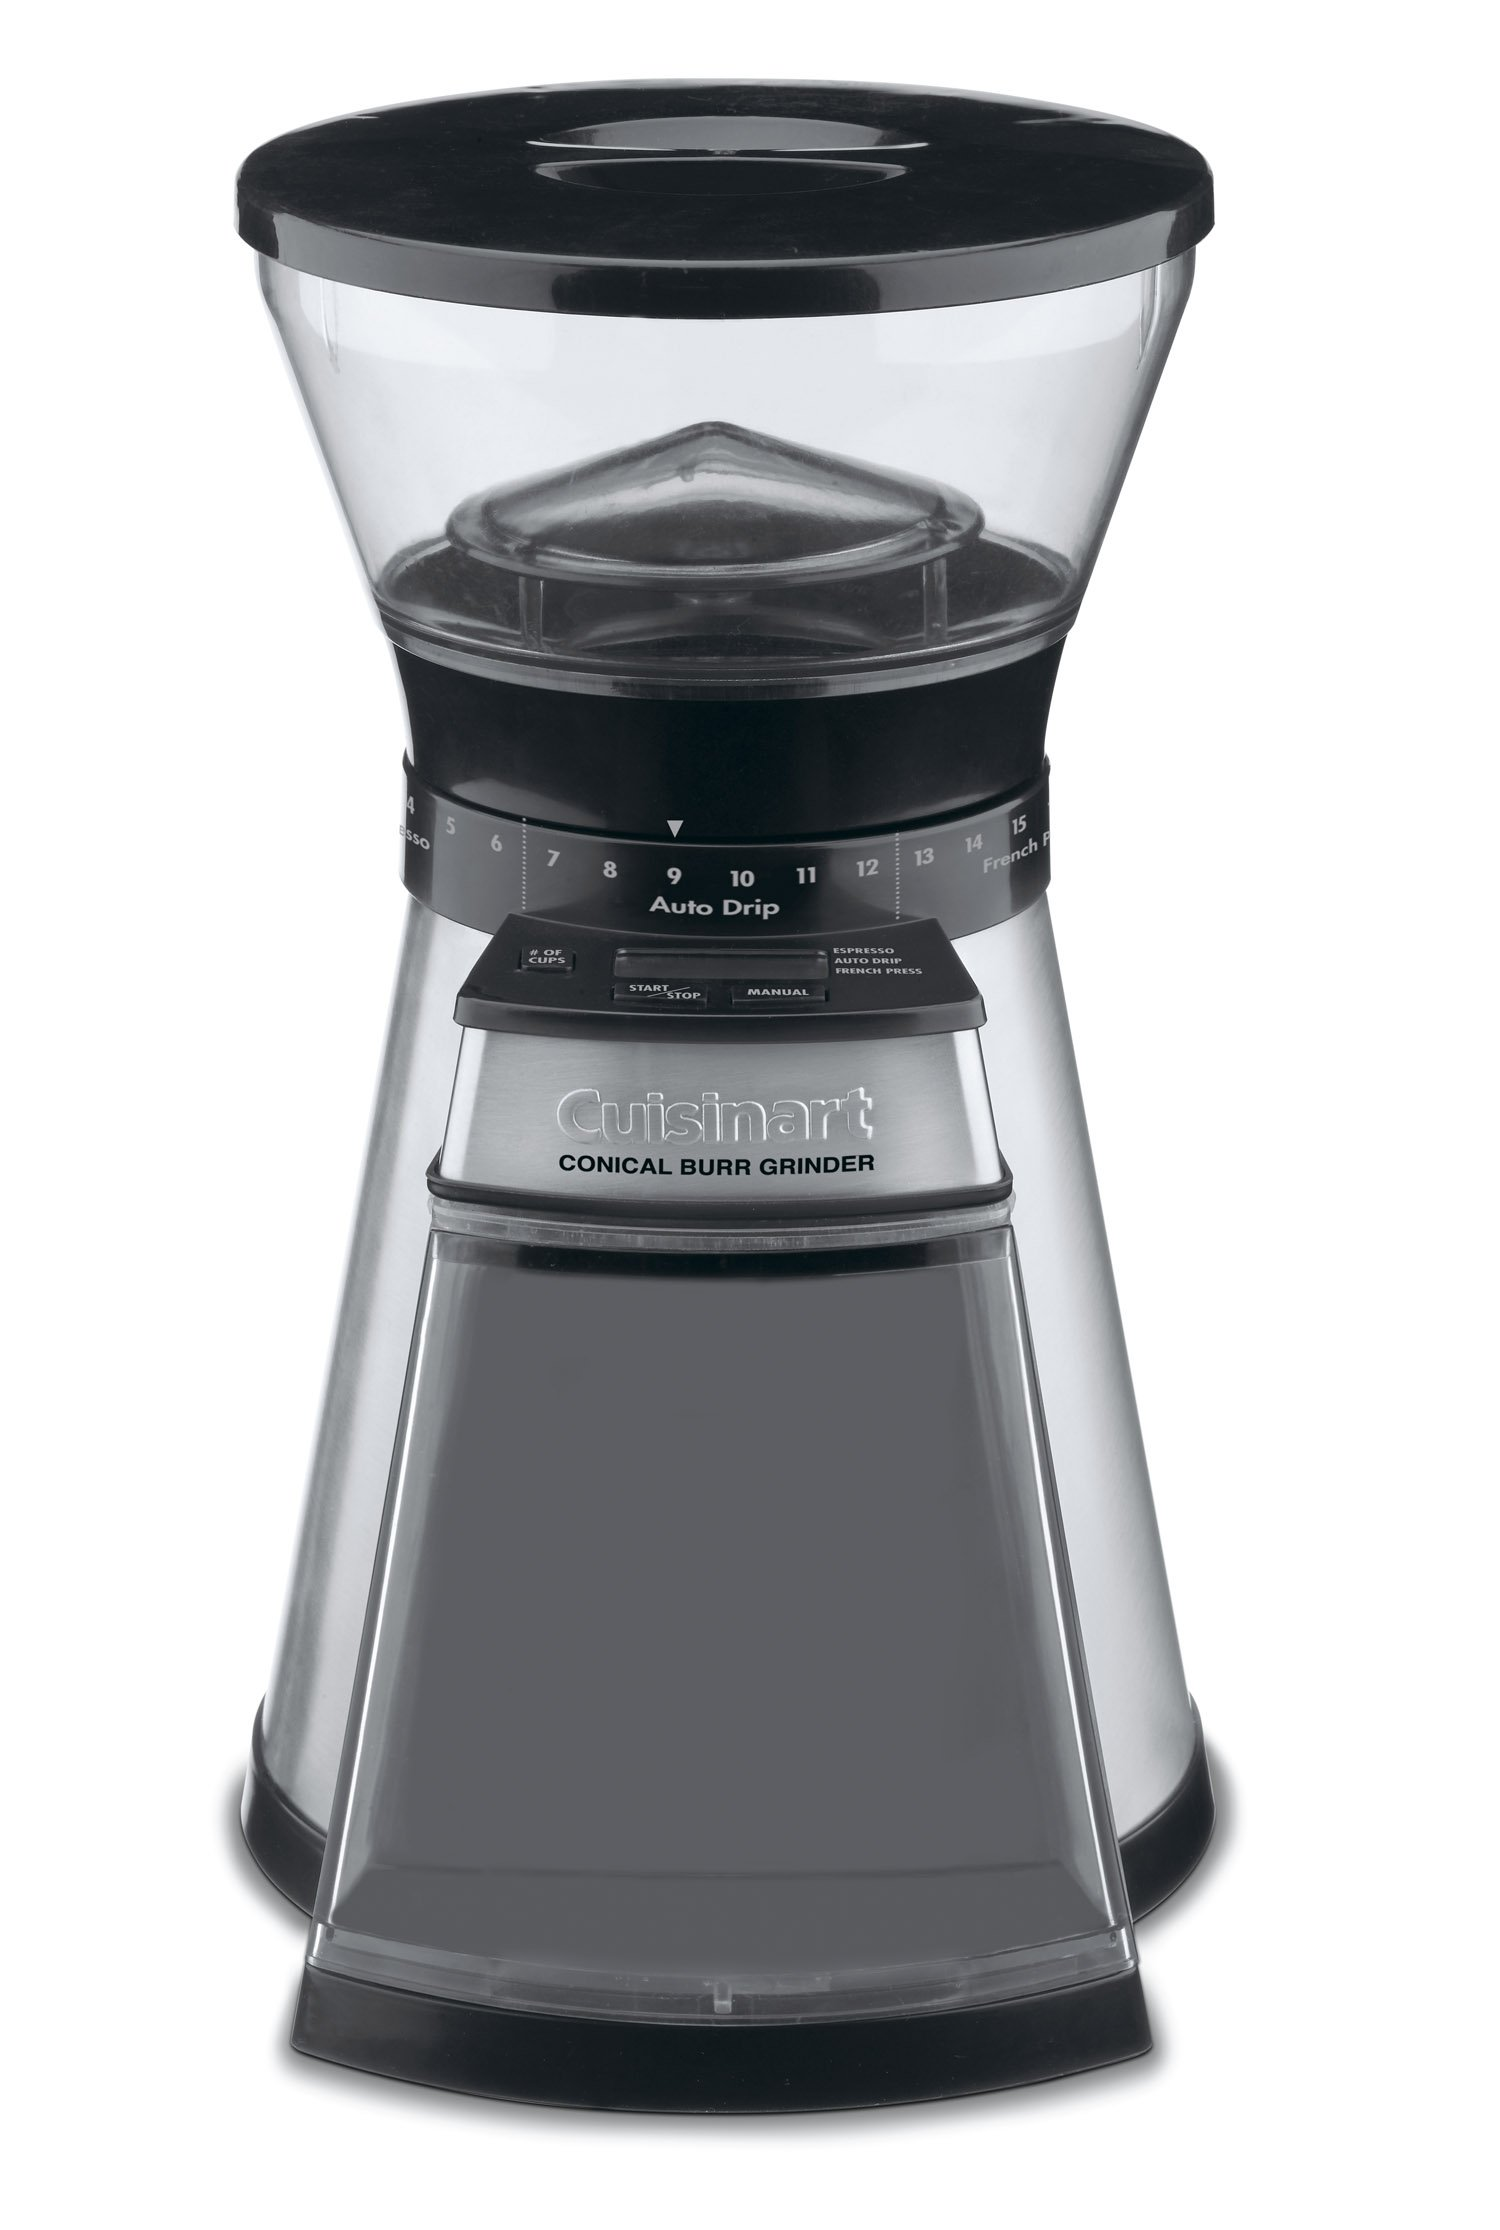 Cuisinart CBM-18N Programmable Conical Burr Mill by Cuisinart